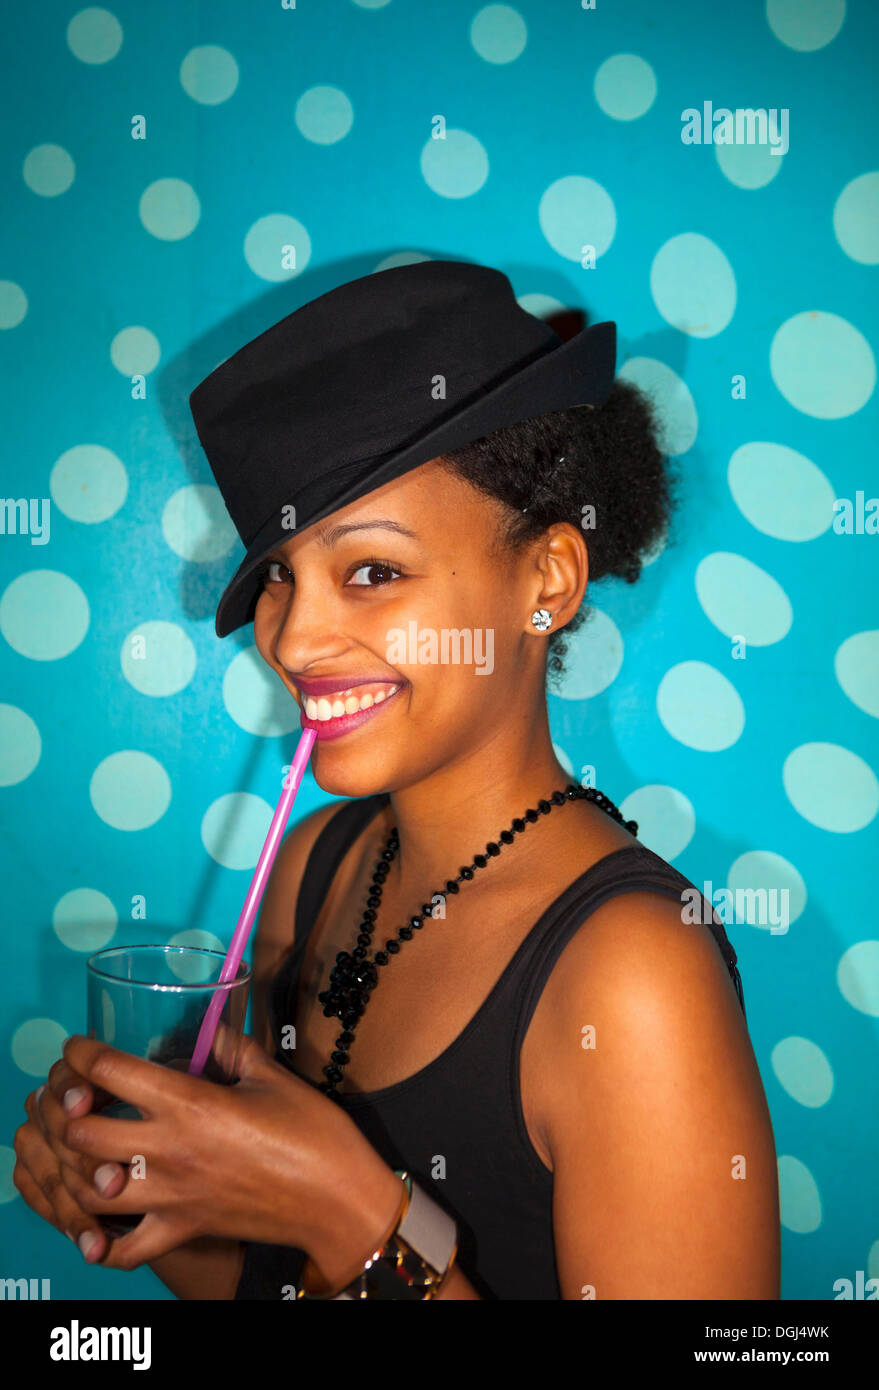 Portrait of young adult woman with mixed race ethnicity smiling and holding drinking glass with straw - Stock Image